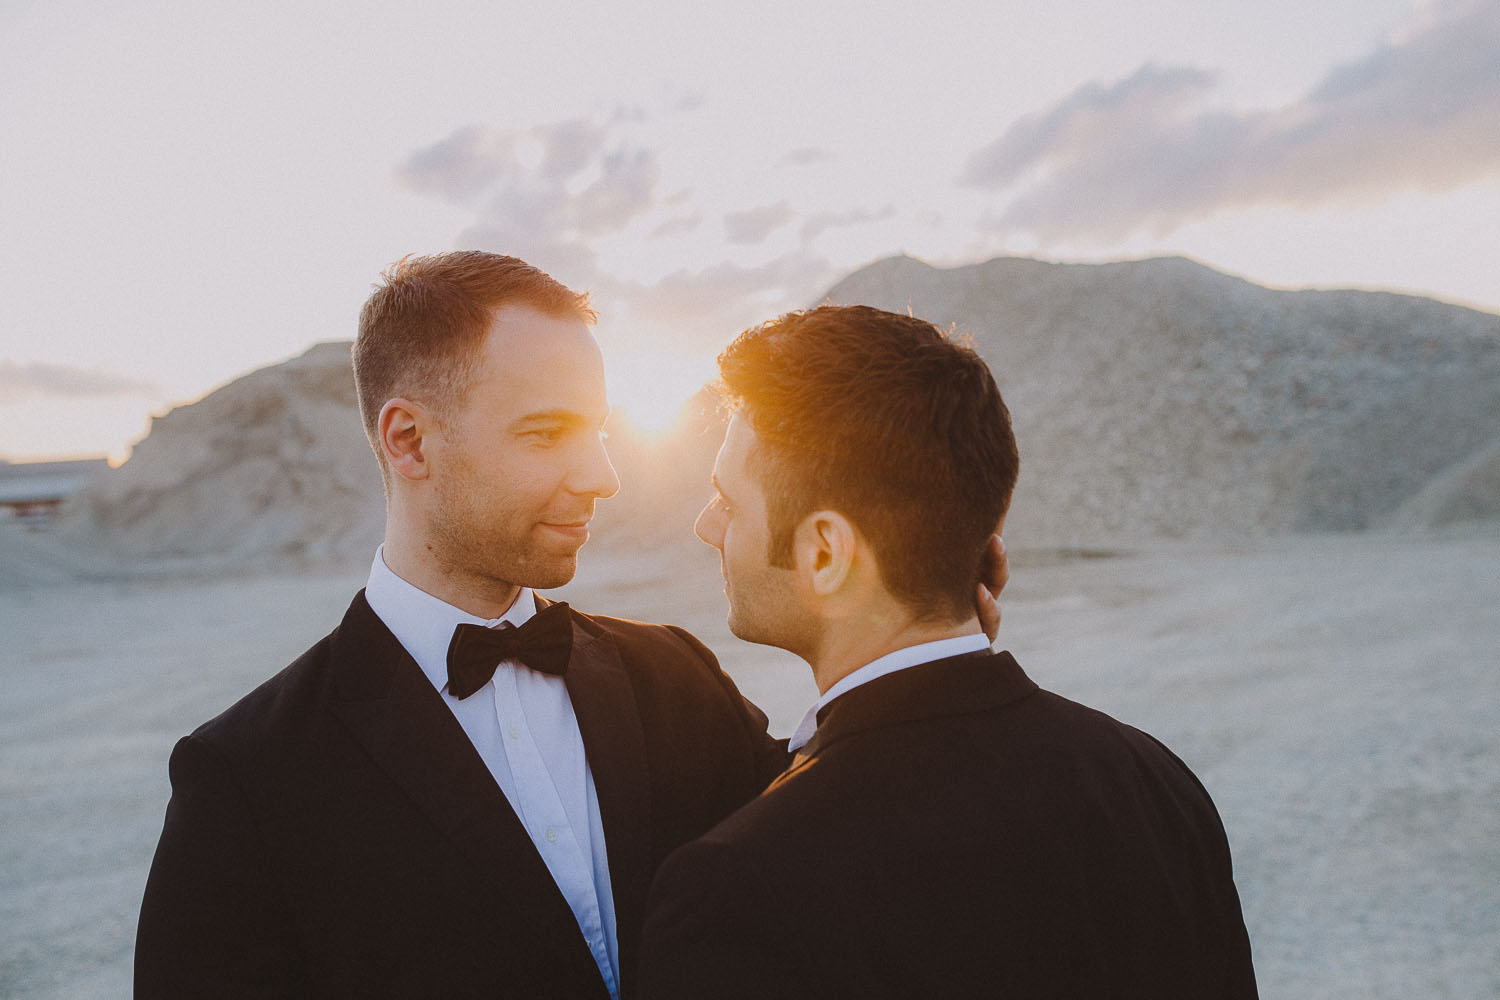 gay_wedding_vienna_austria-107